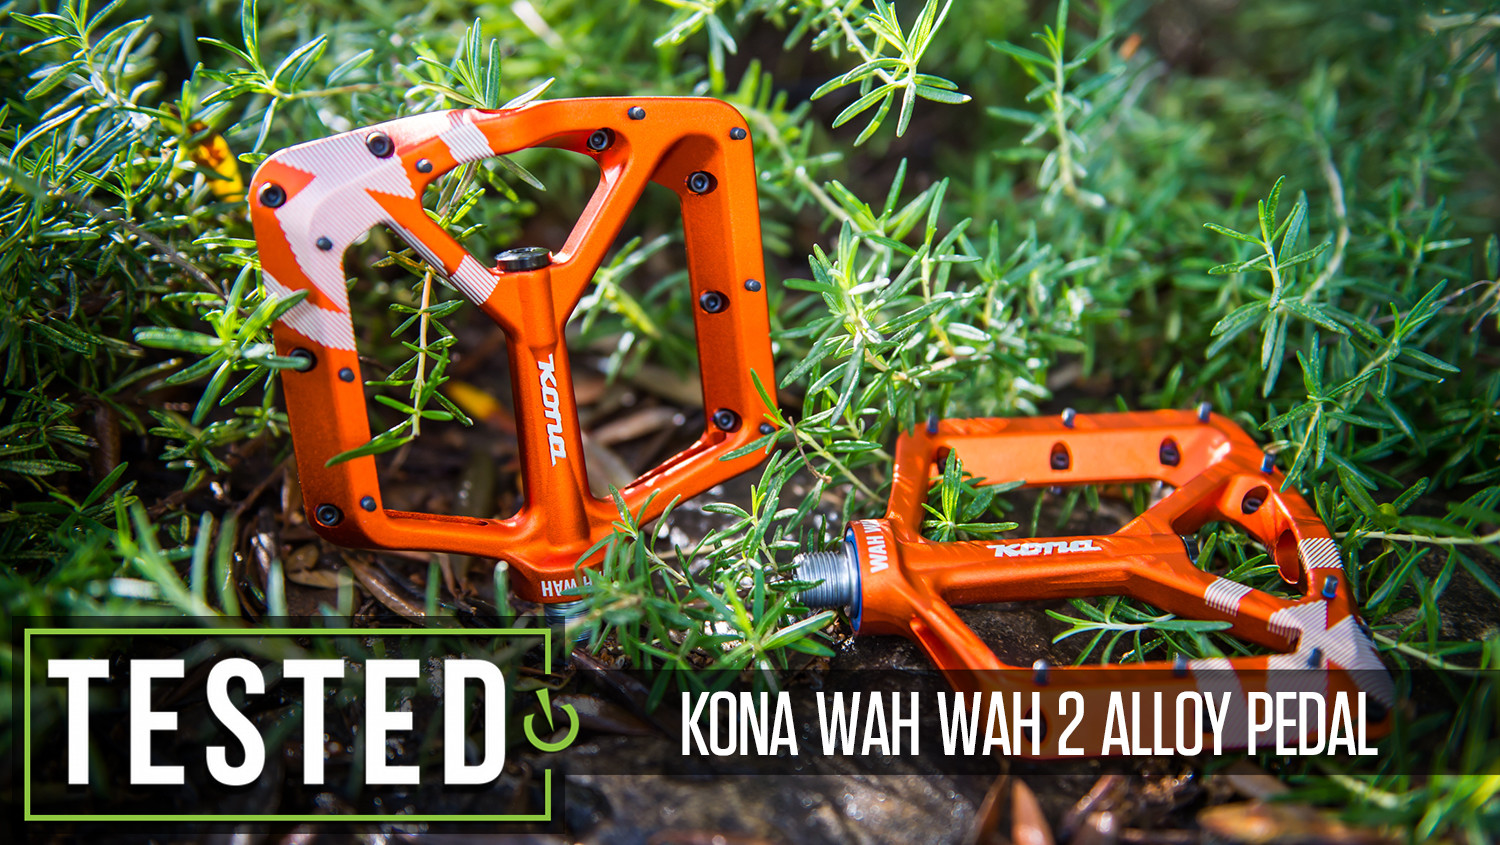 Tested: Kona Wah Wah 2 Alloy Pedal